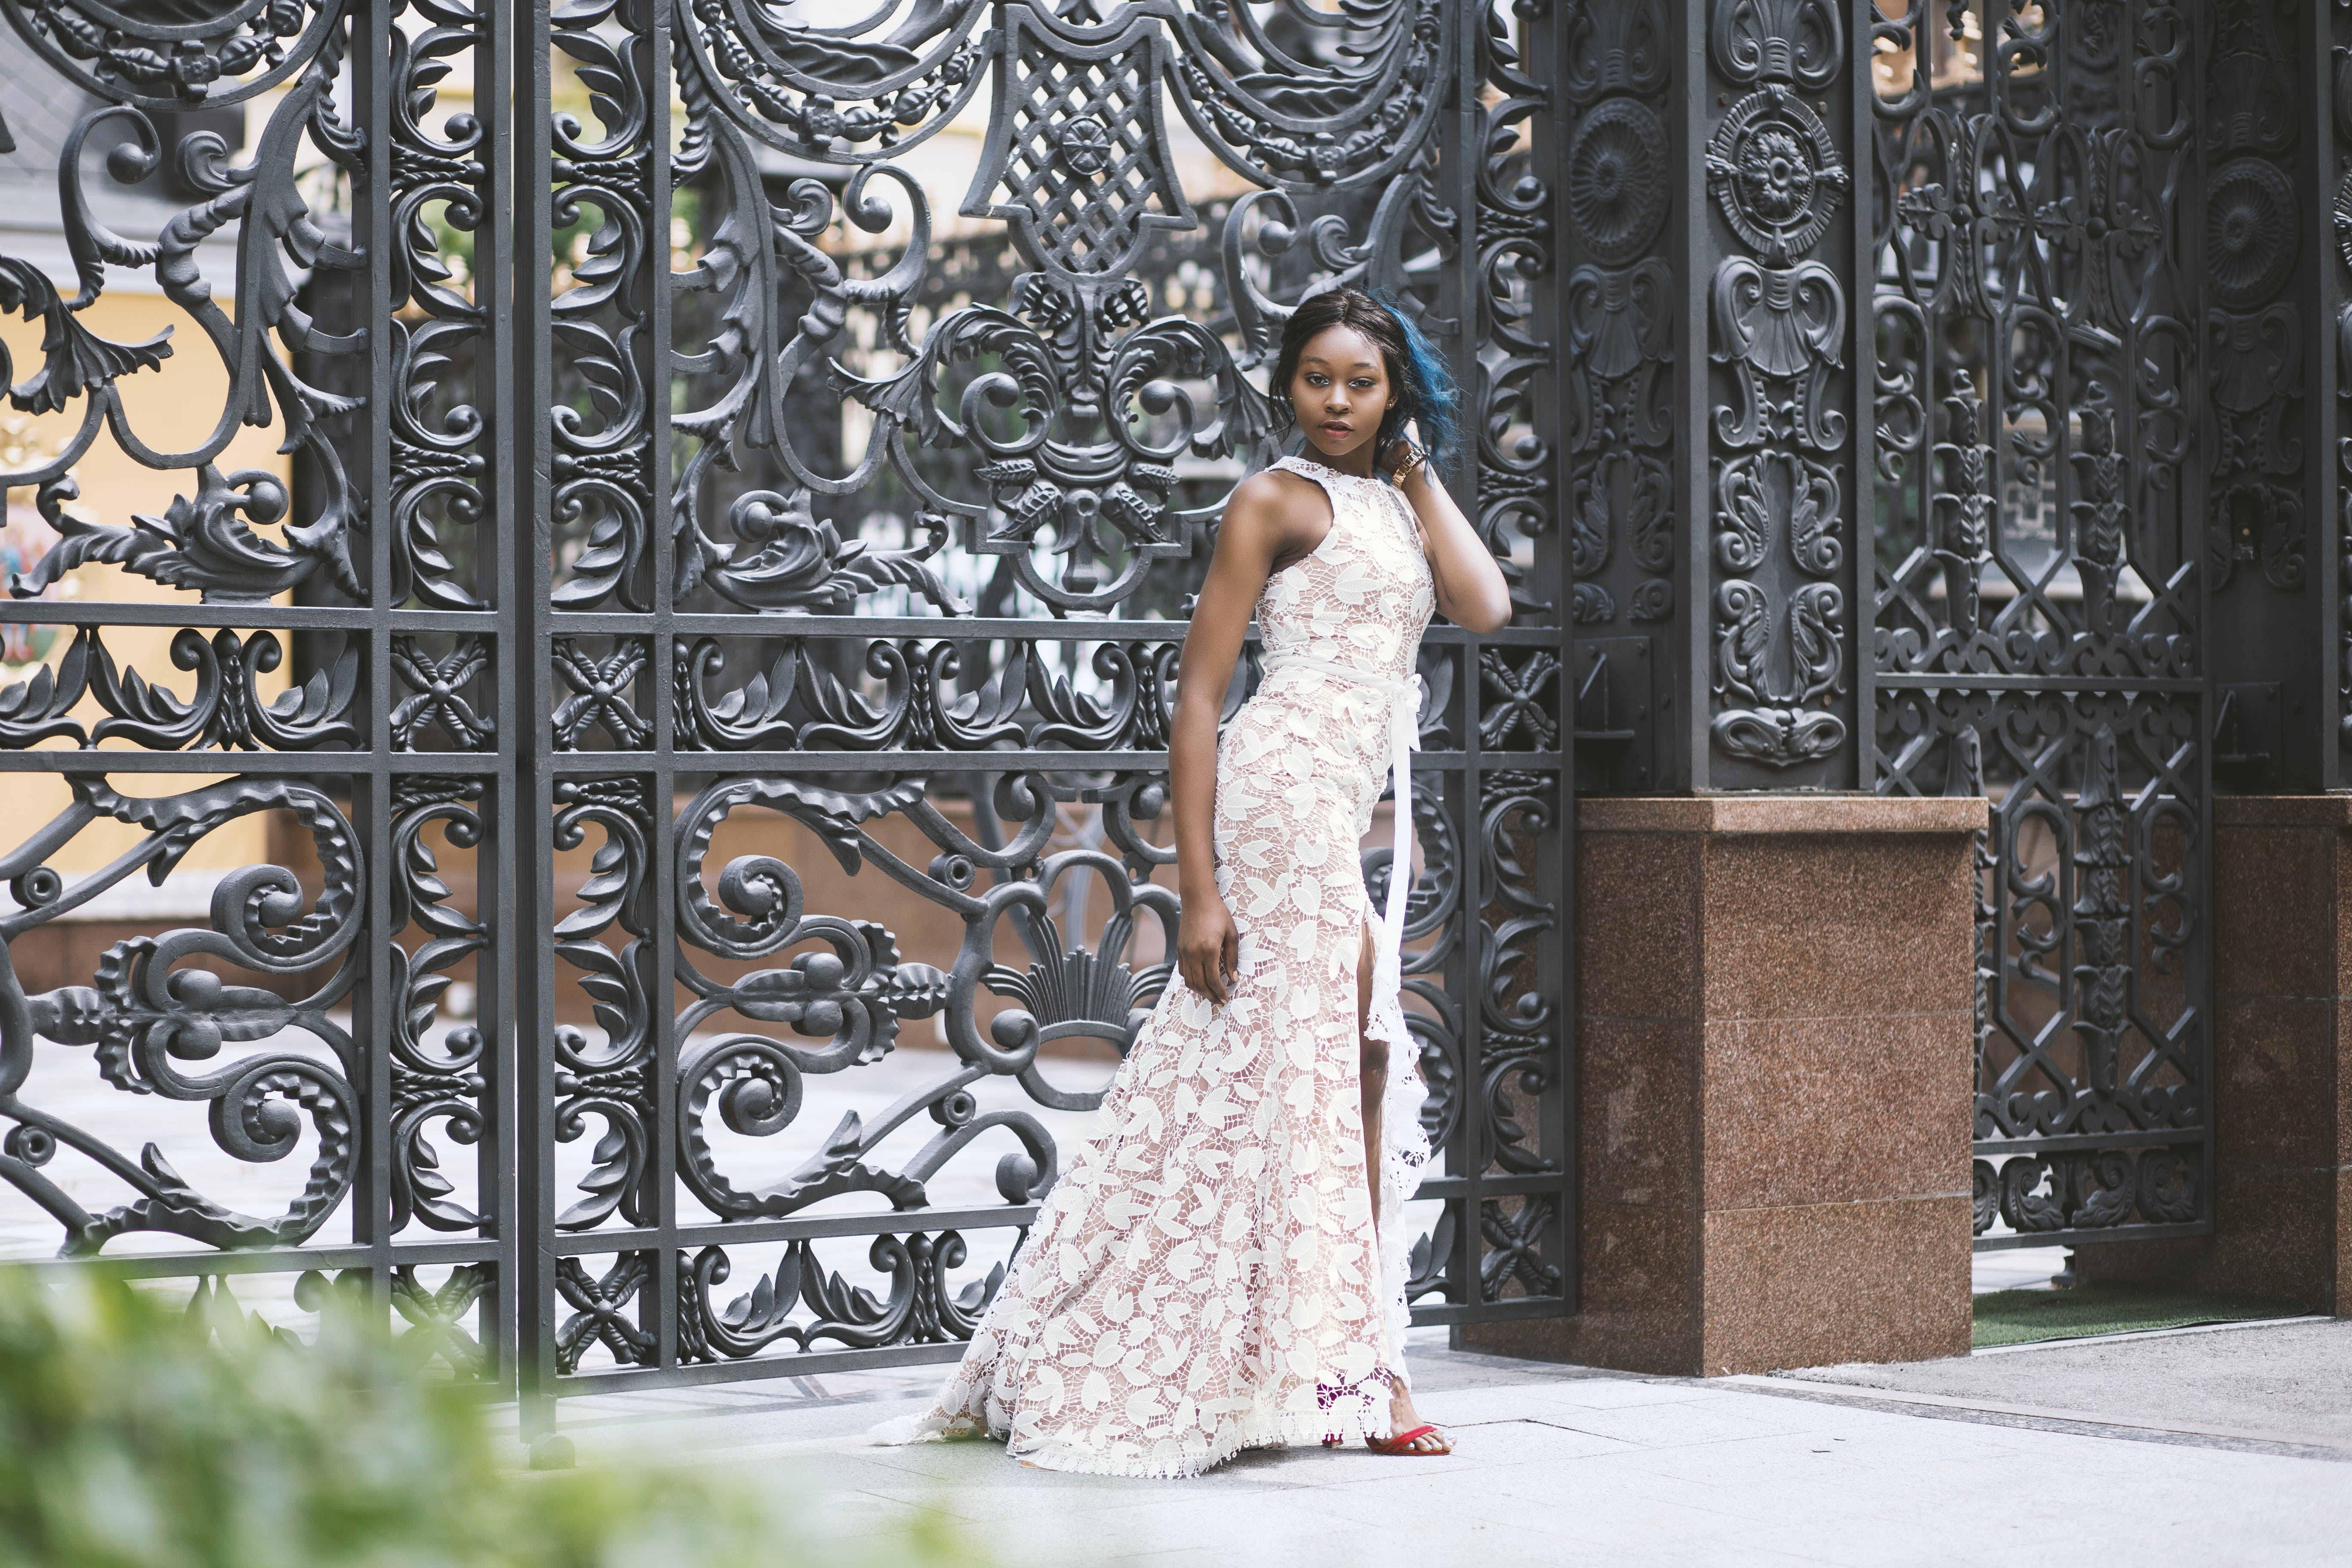 Woman Wearing White Dress Standing In Front Of Black Metal Gate